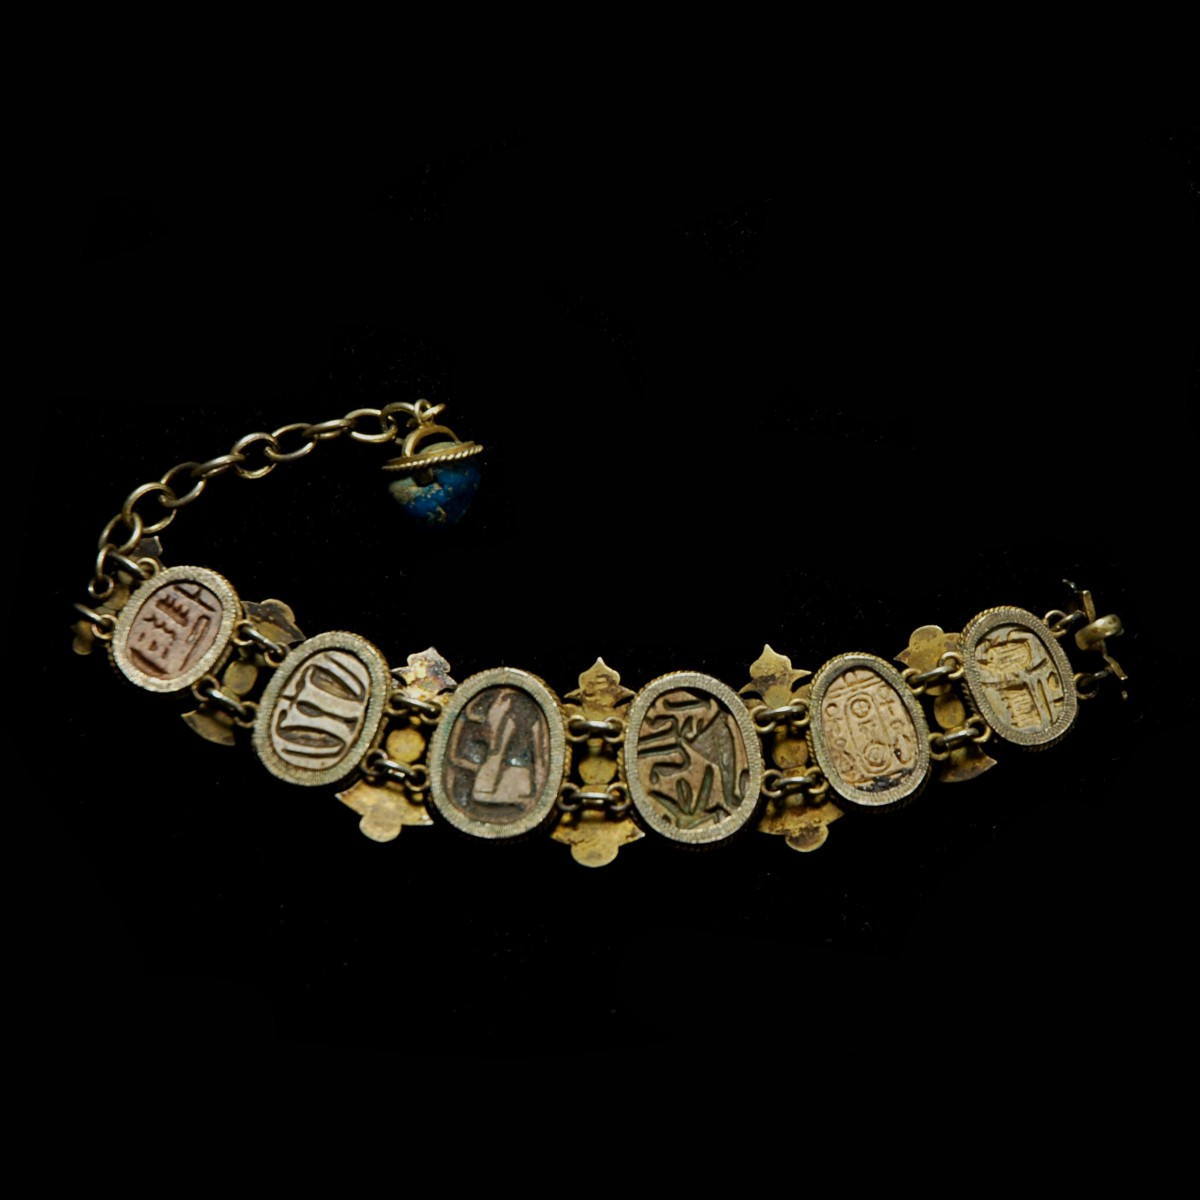 Egyptian bracelet with scarabs